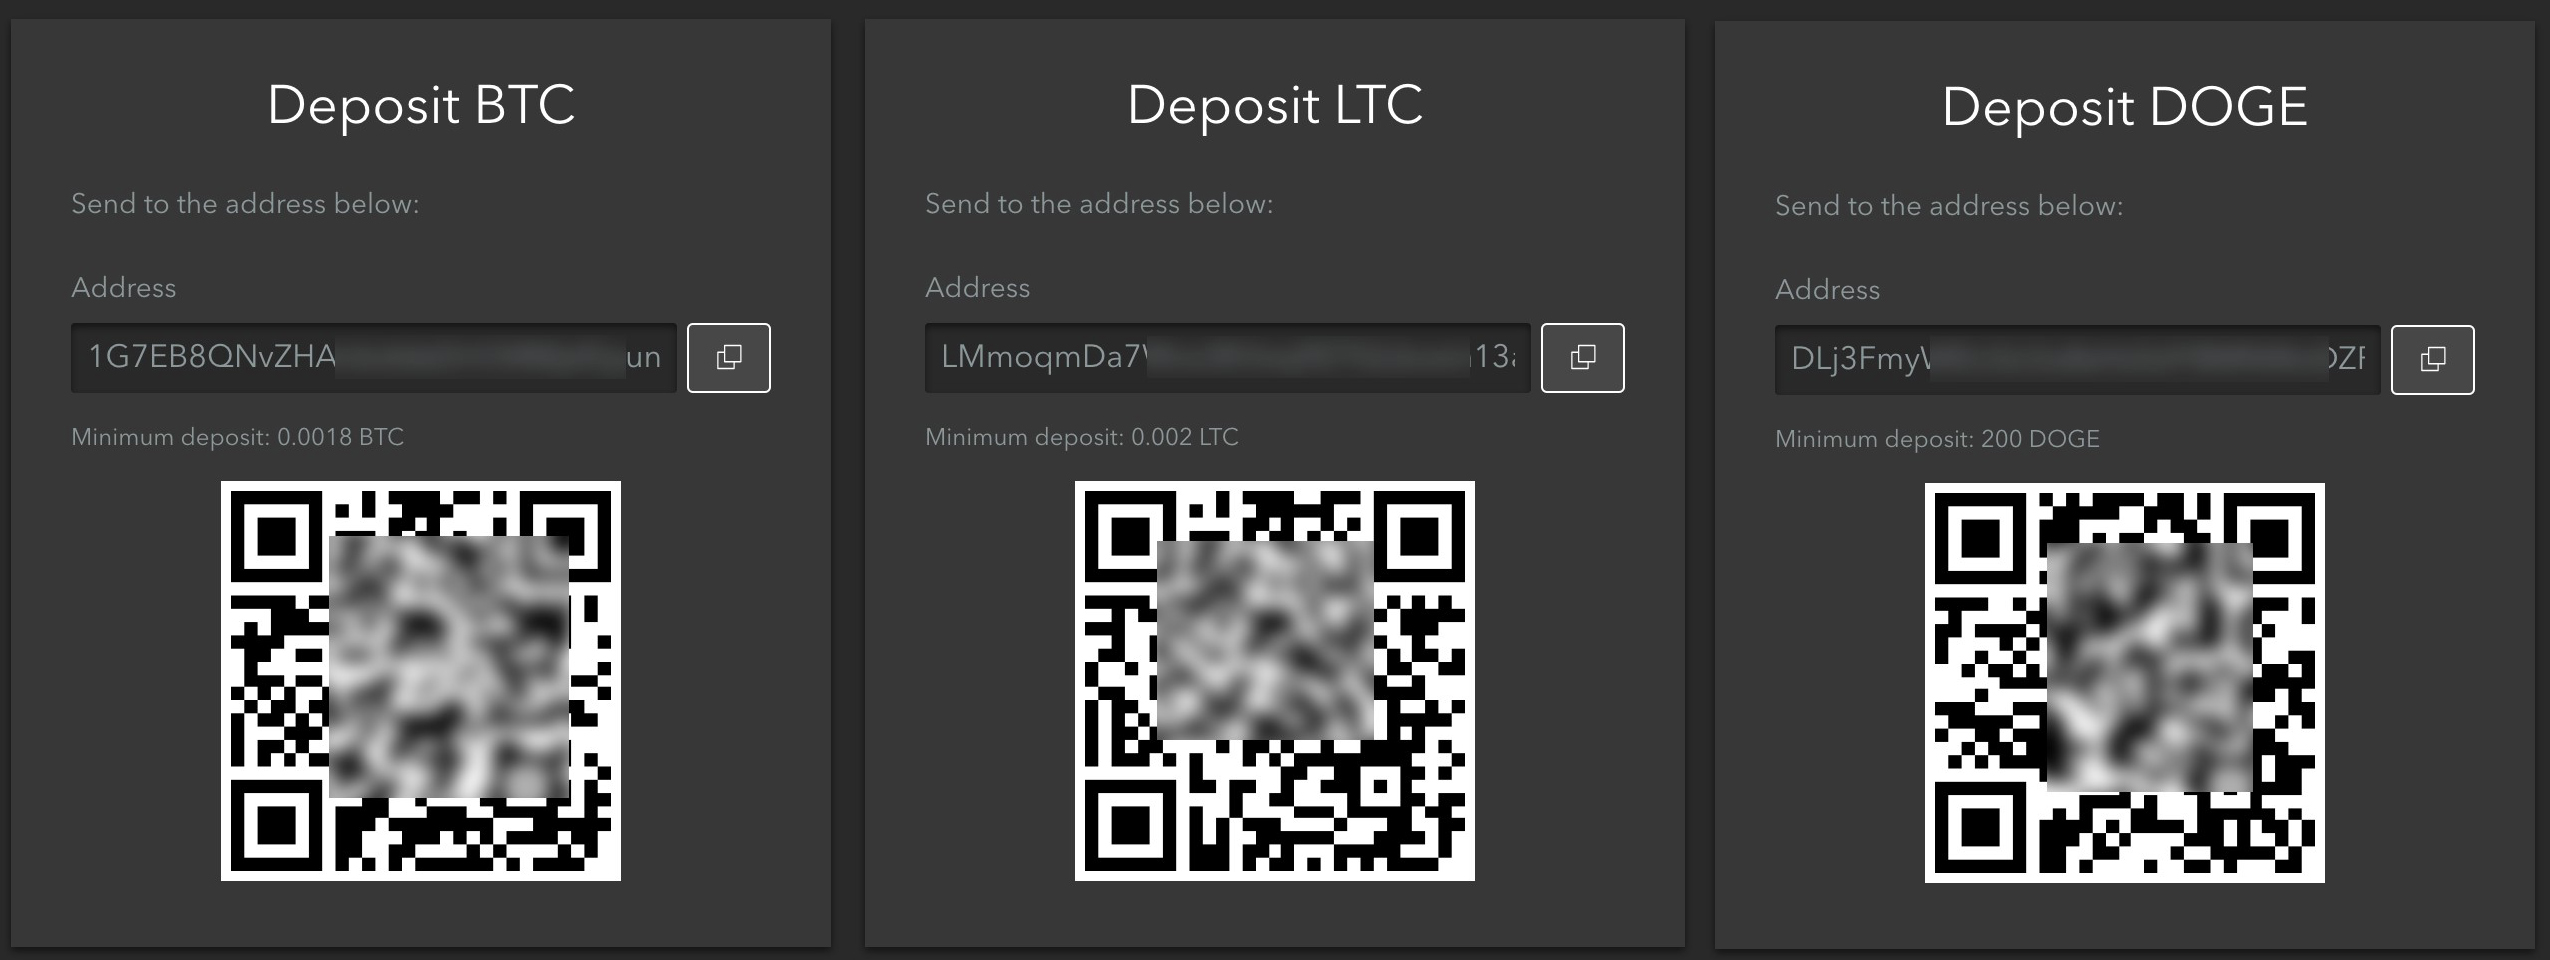 By clicking on Wallet icon you'll see the window with the address which you need to send fund to